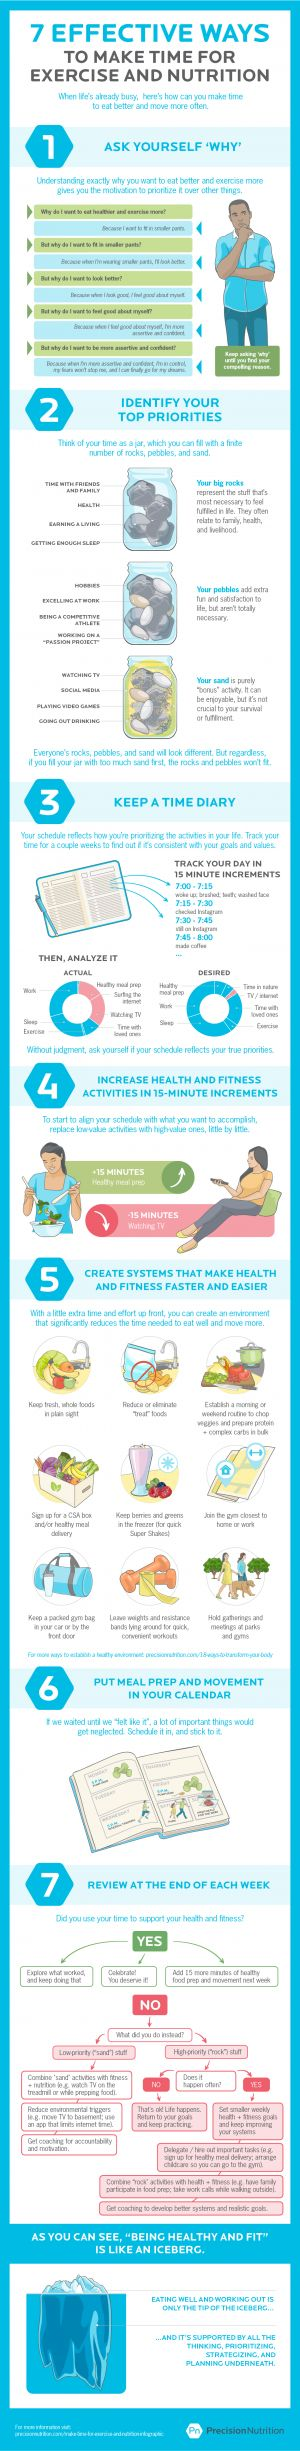 7 effective ways to make time for exercise and nutrition. How to prioritize health, organize your schedule, and get things done